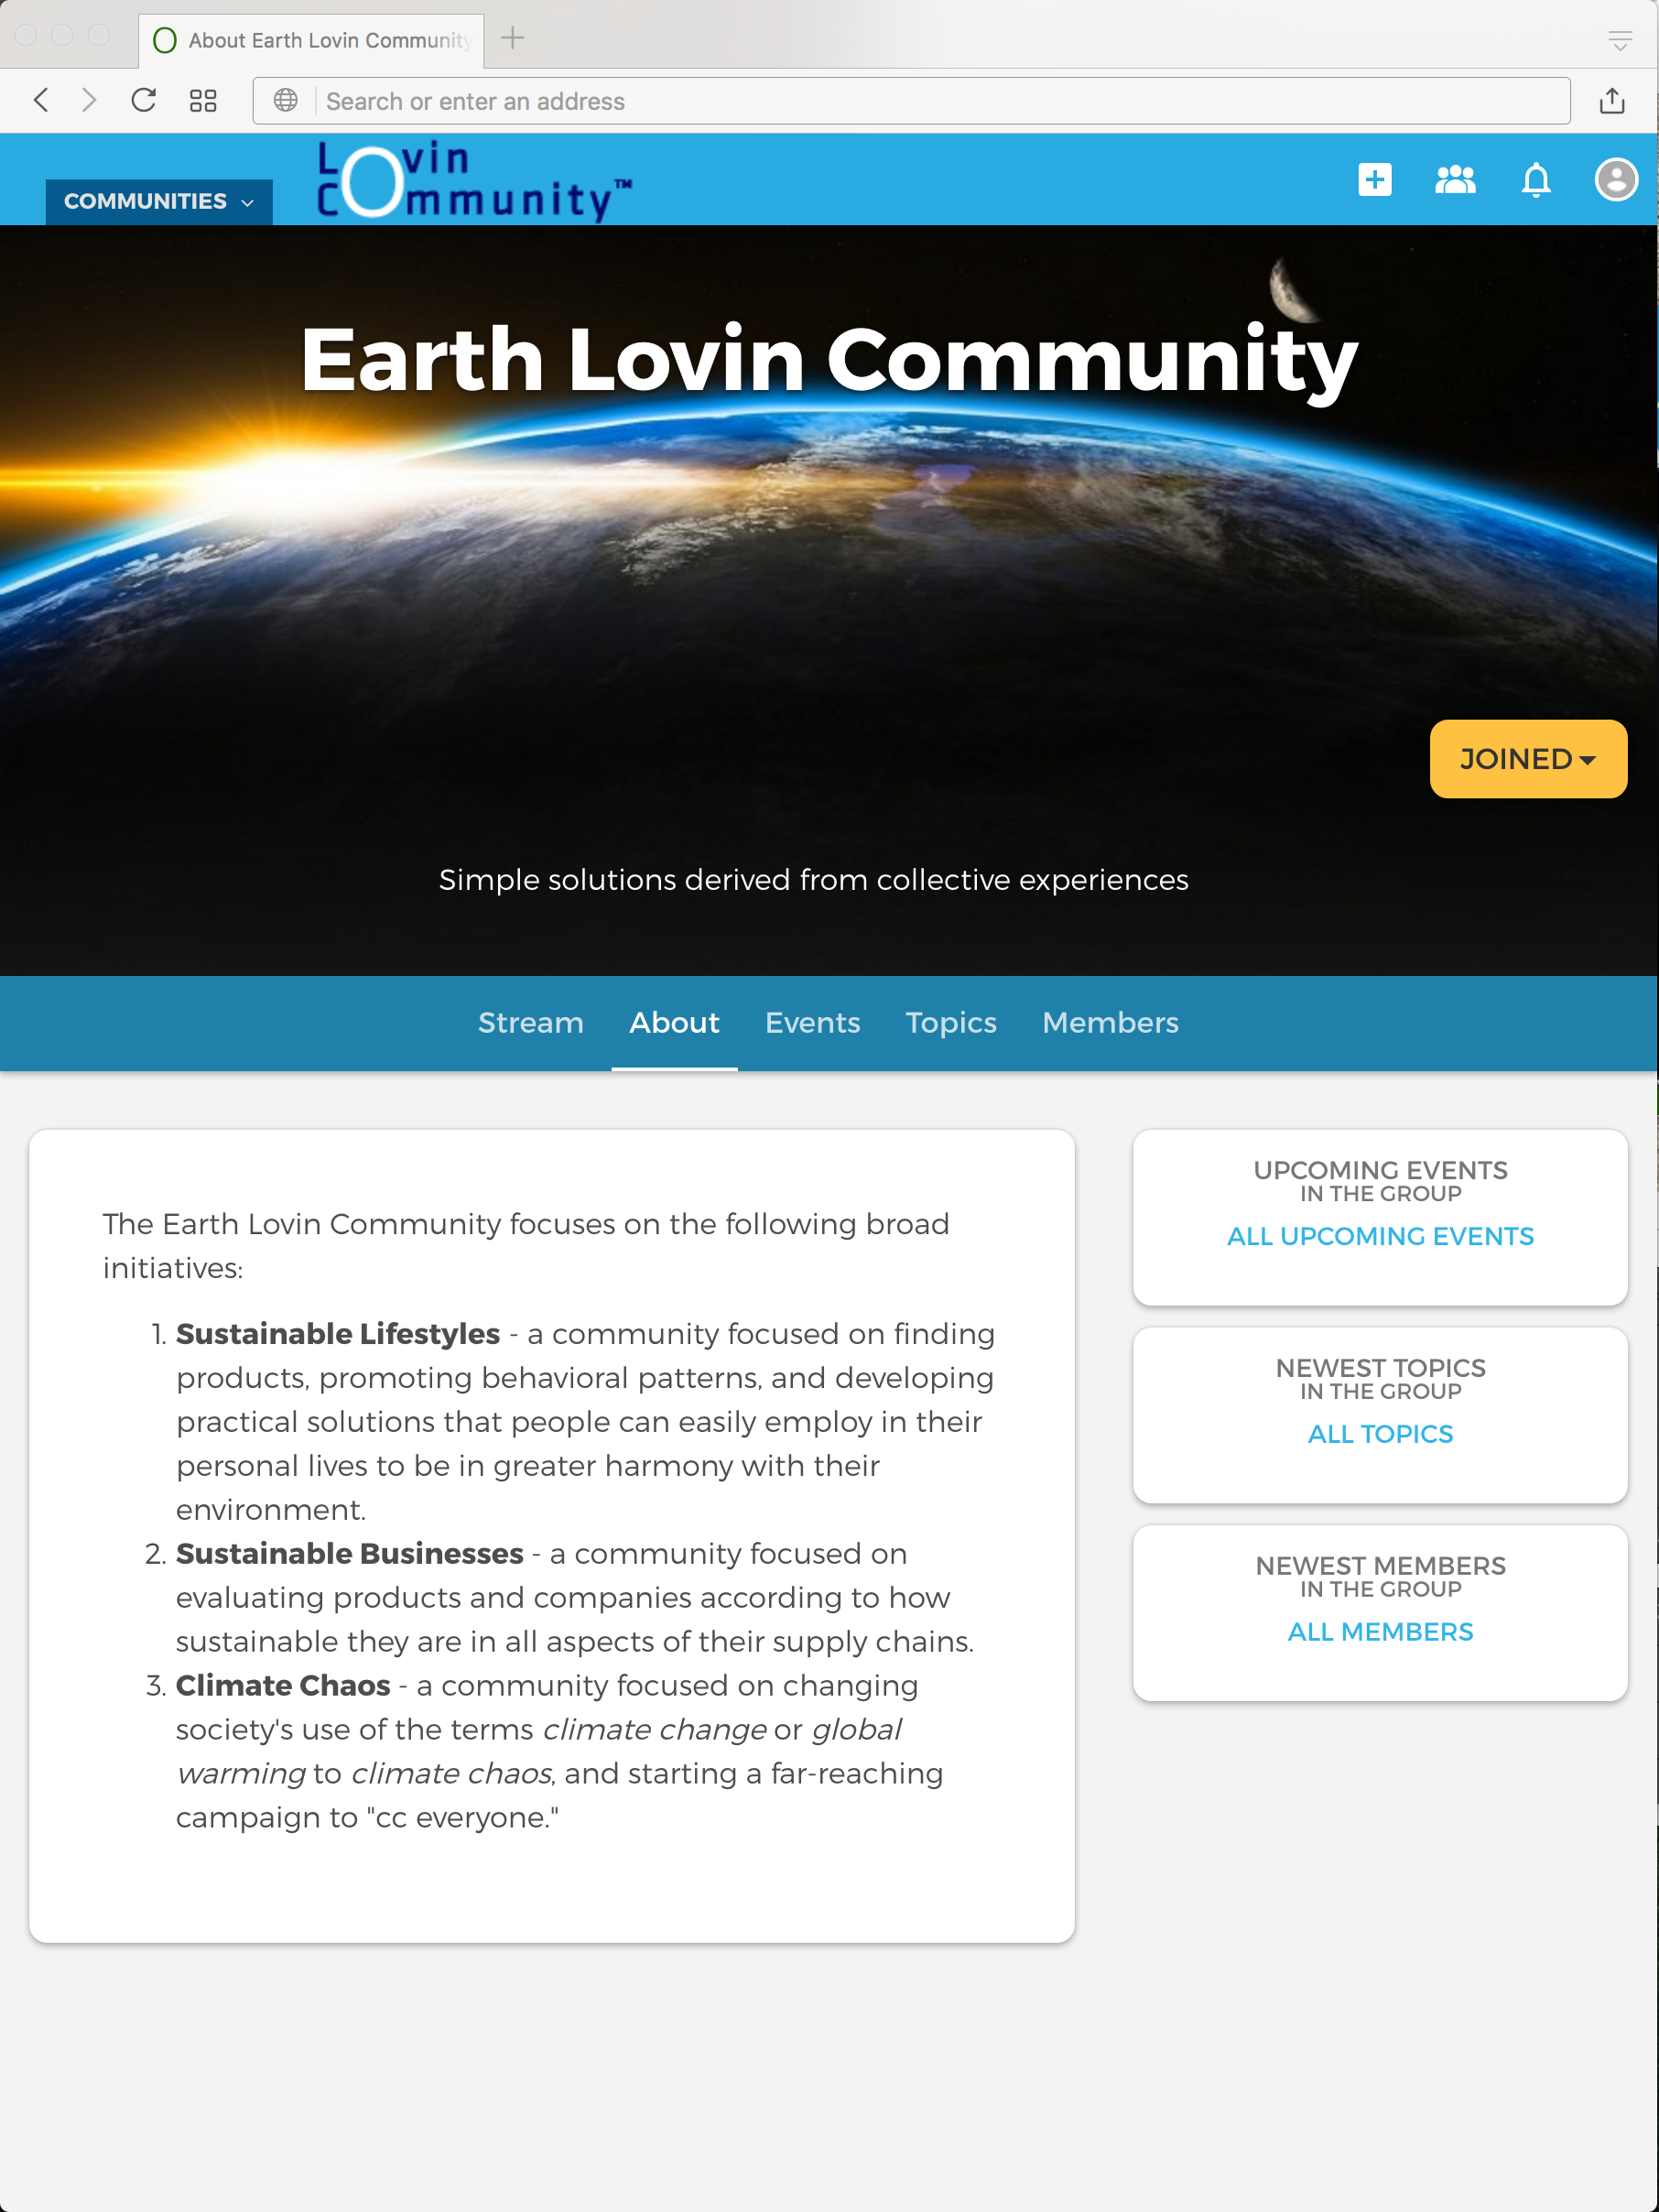 About the Earth Lovin Community